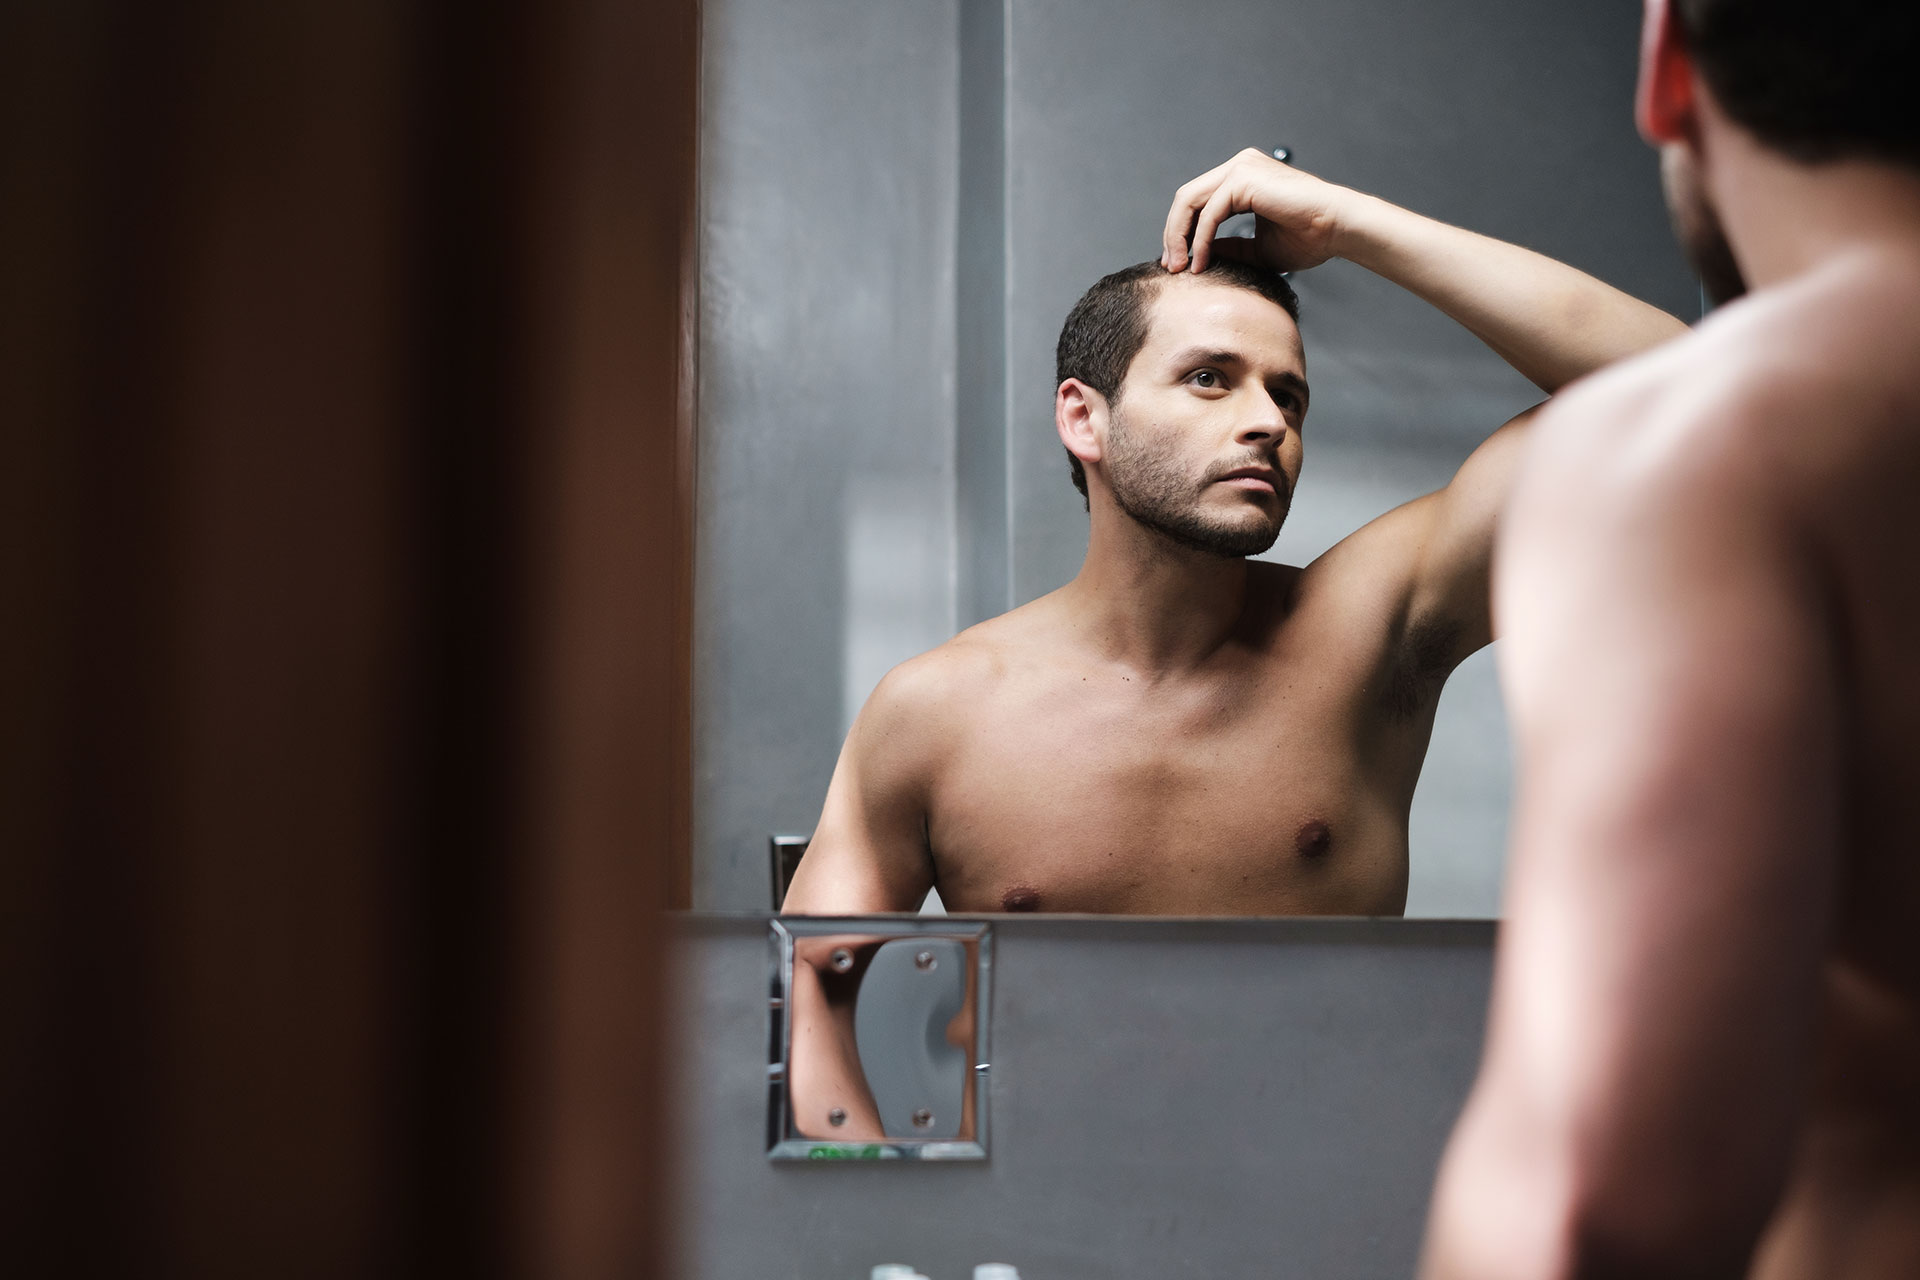 How Fish Oil Could Promote Hair Growth